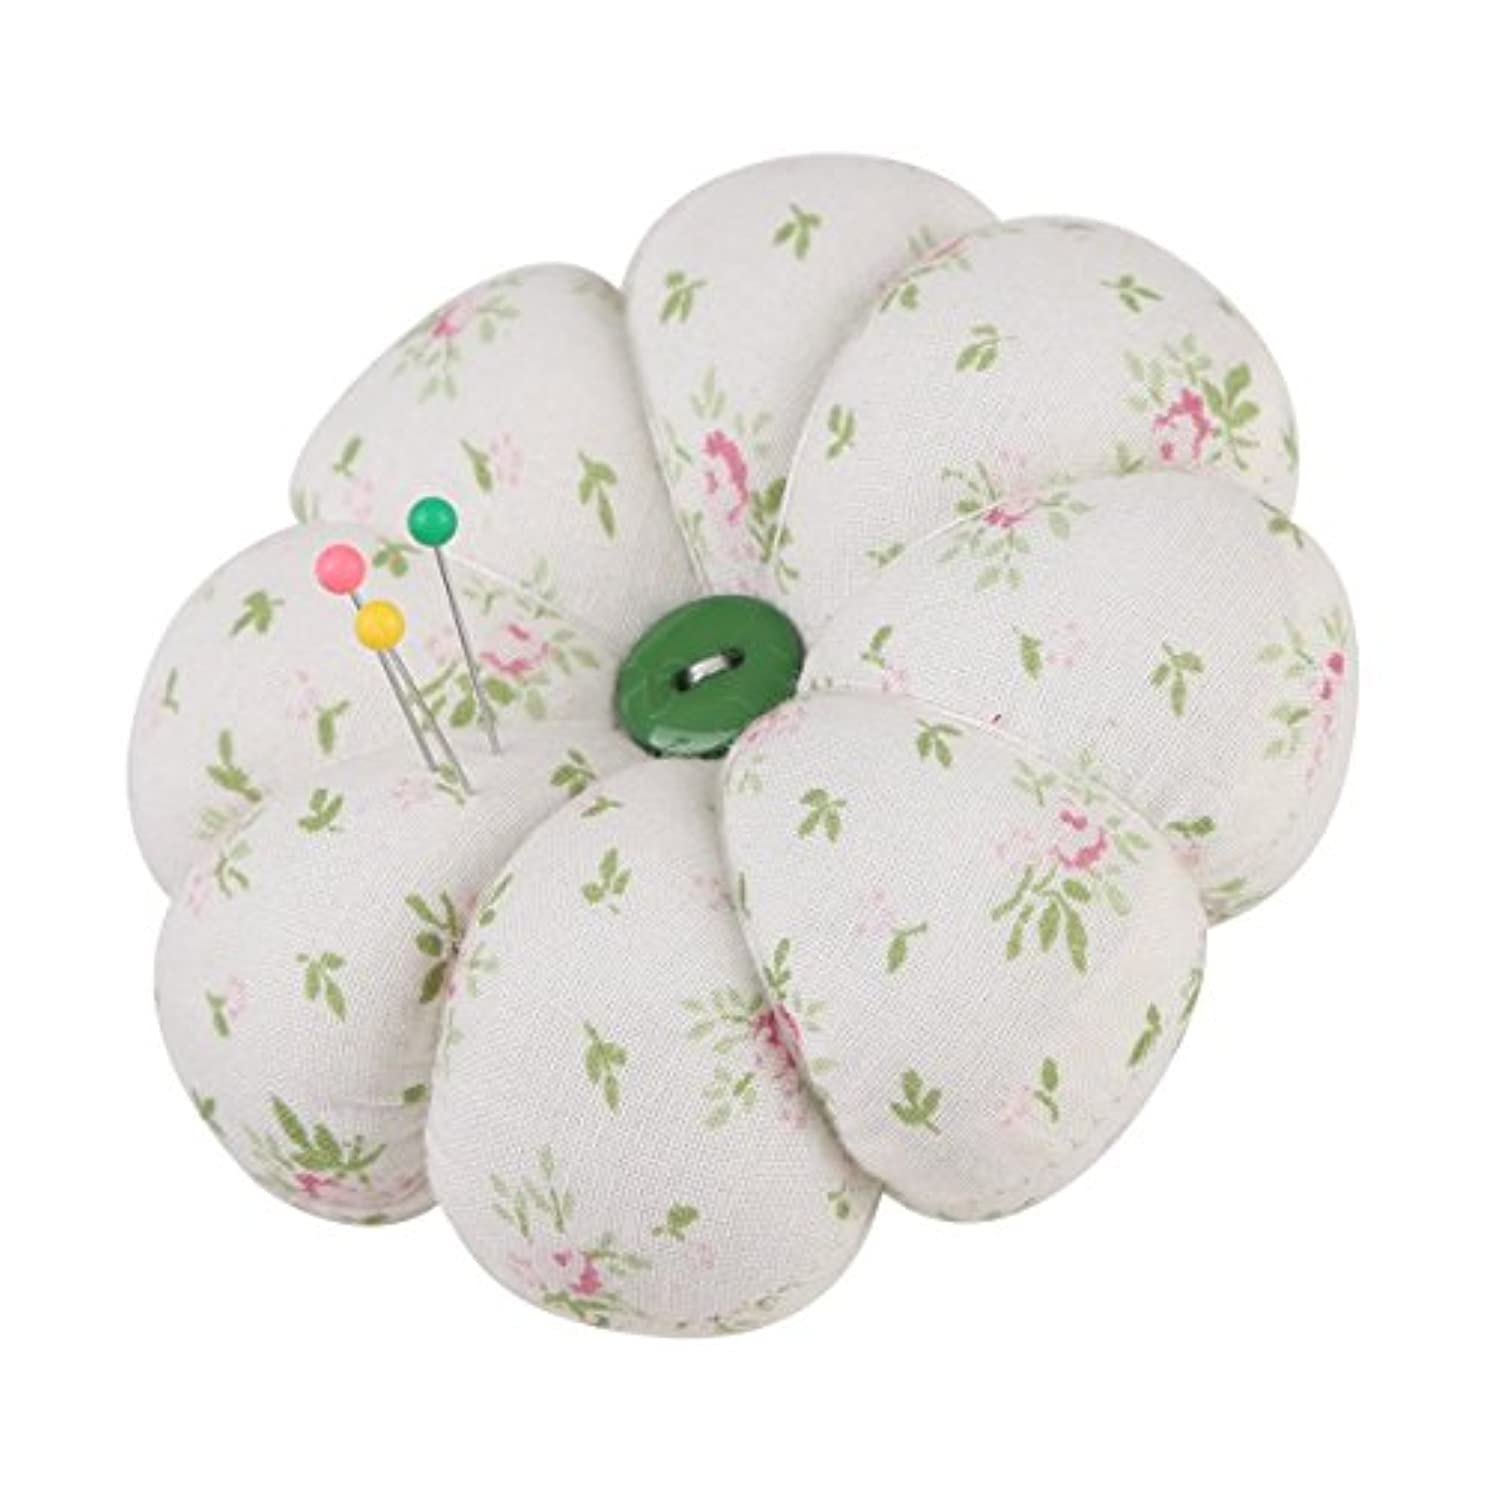 NEOVIVA Vintage Fabric Coated Fully Padded Pincushions for Sewing and Needleworks, Pack of 2, Floral Mist Green